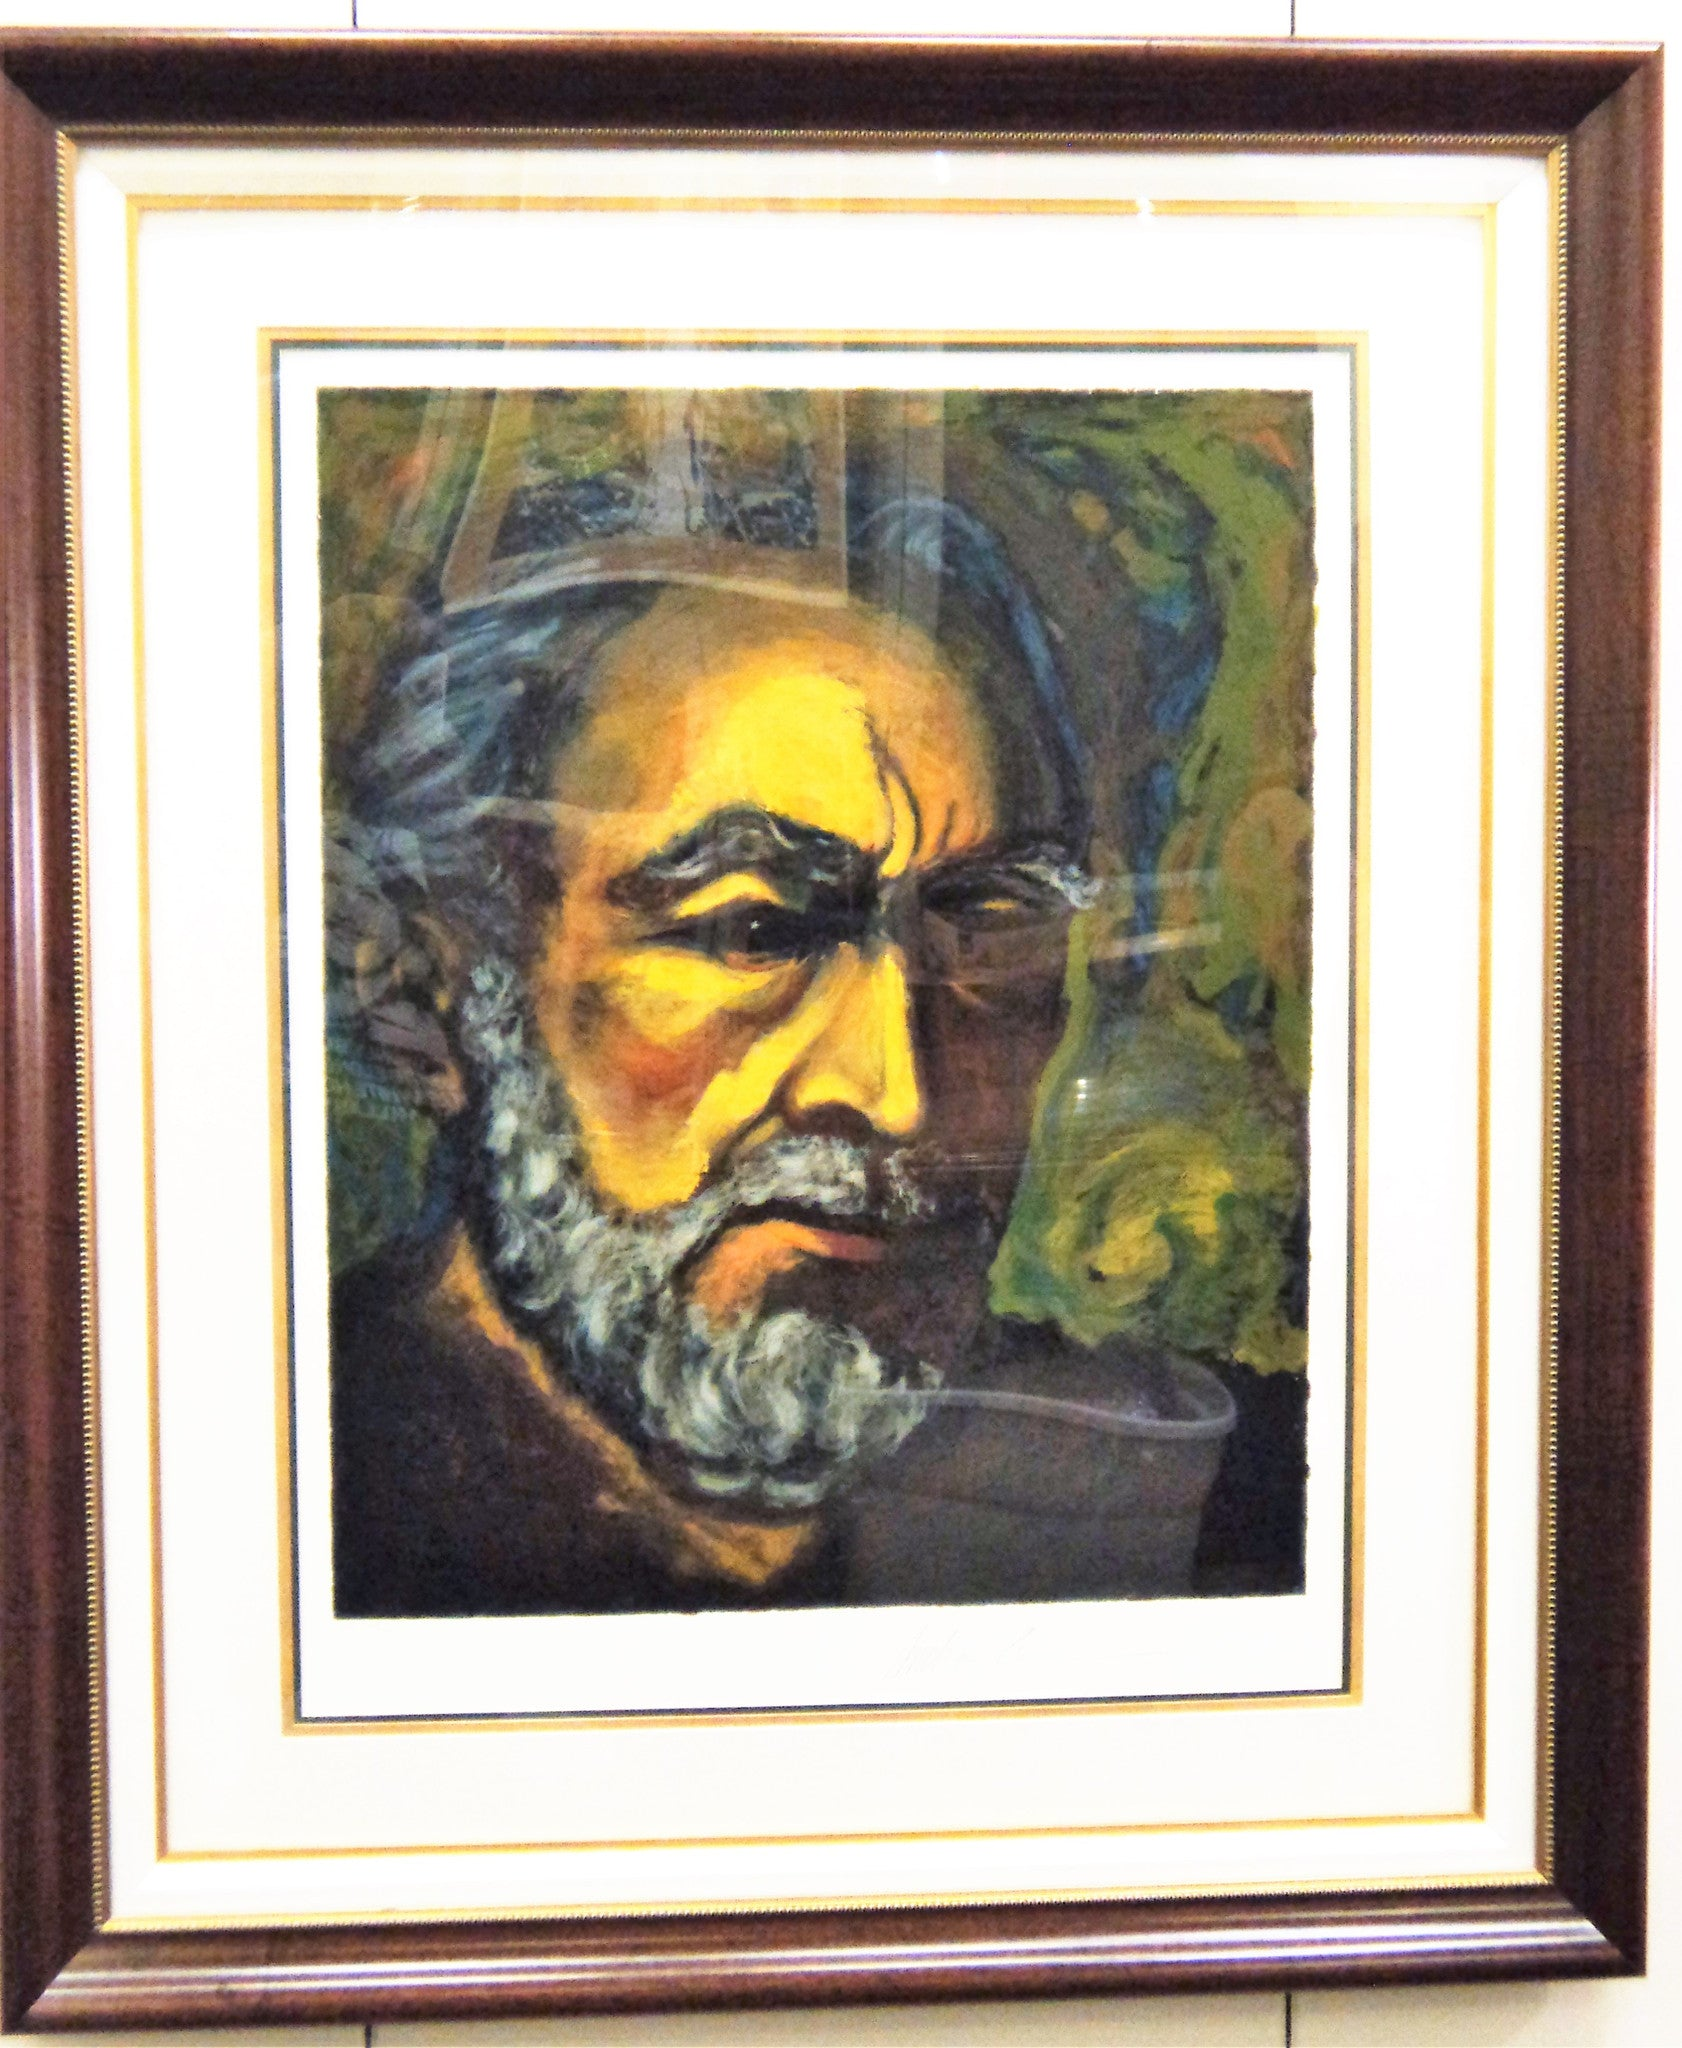 Anthony Quinn (1915-2001) Self Portrait Litho